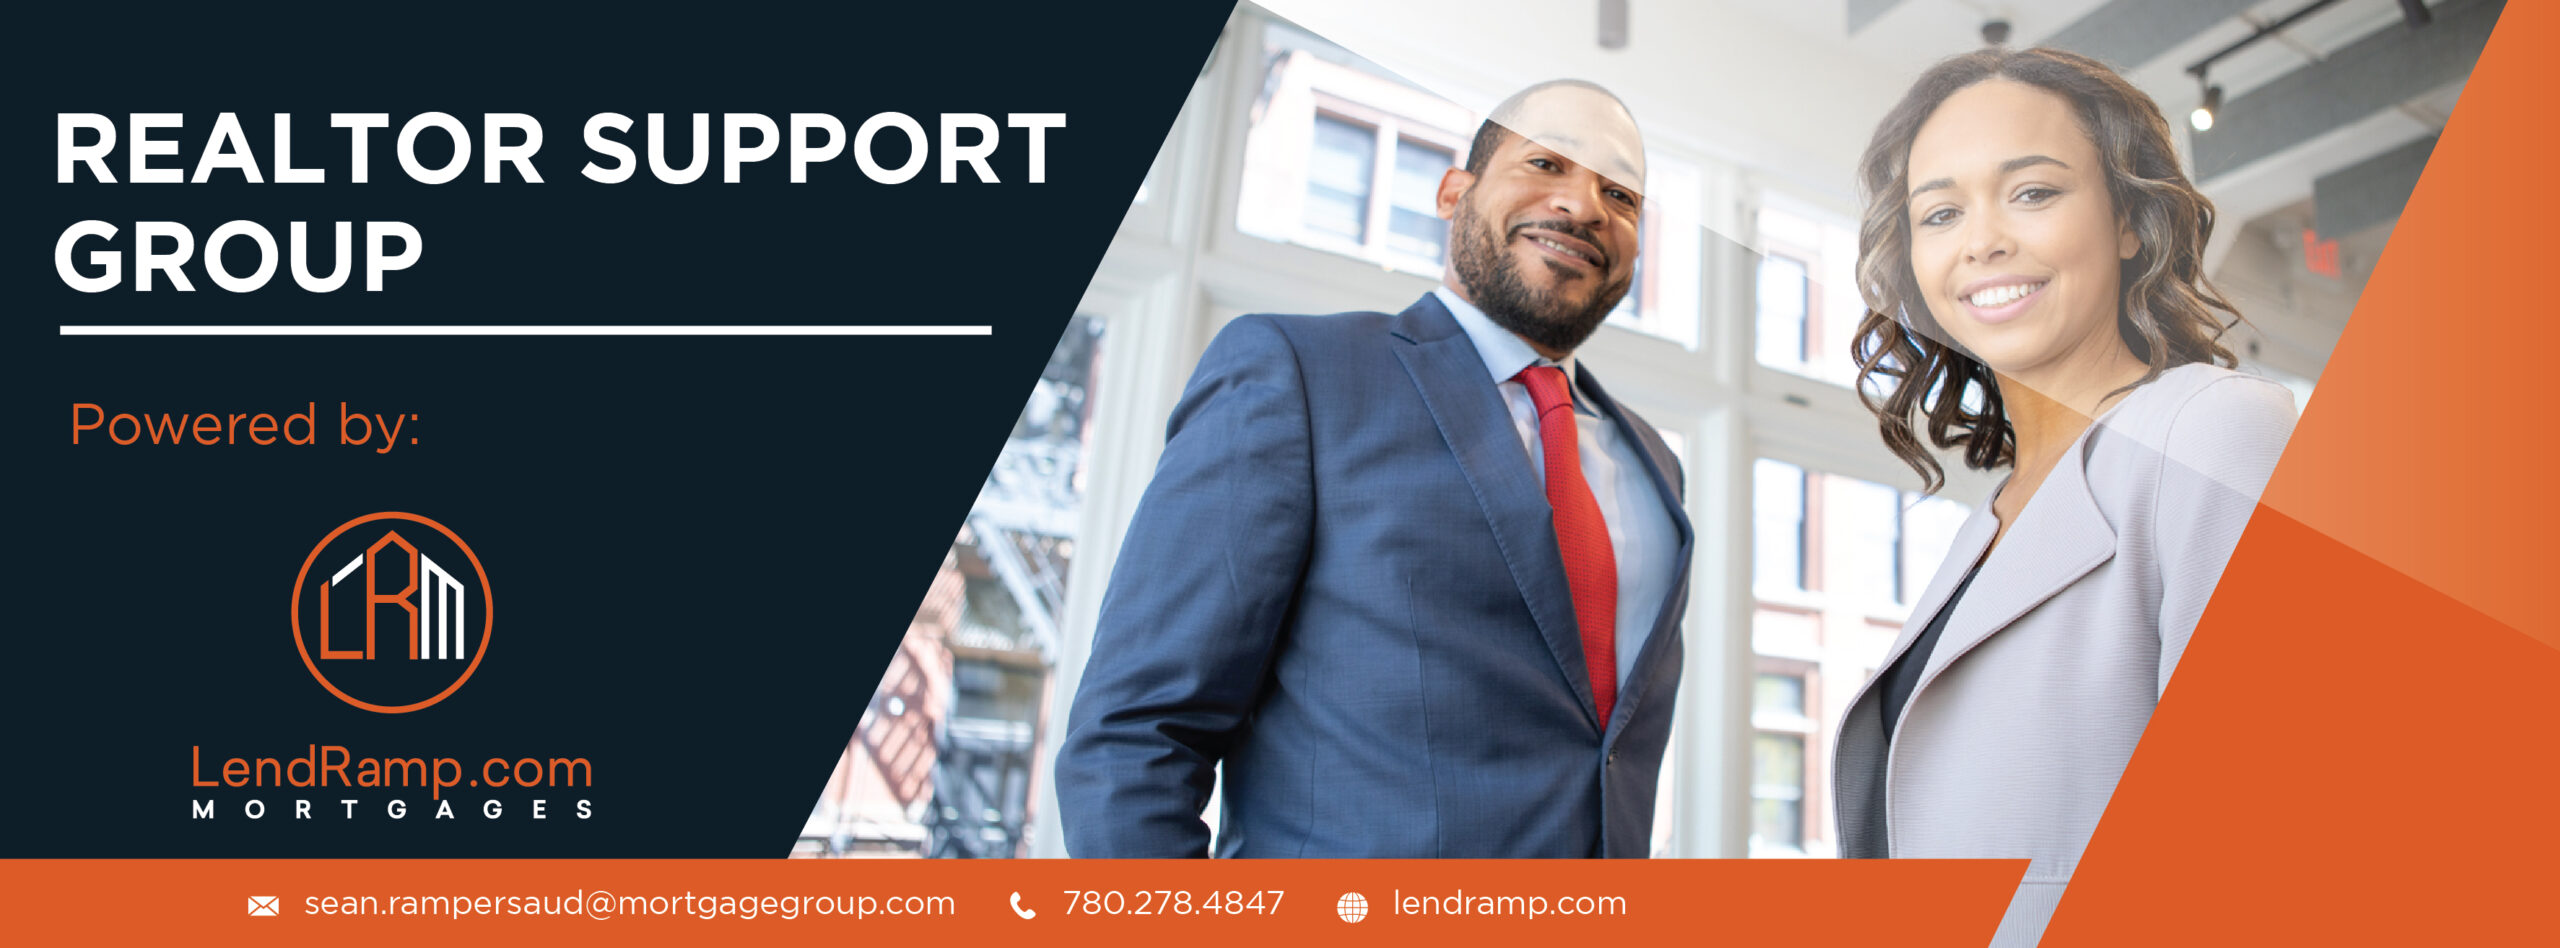 Realtor Support Group. Sean Rampersaud Mortgage broker